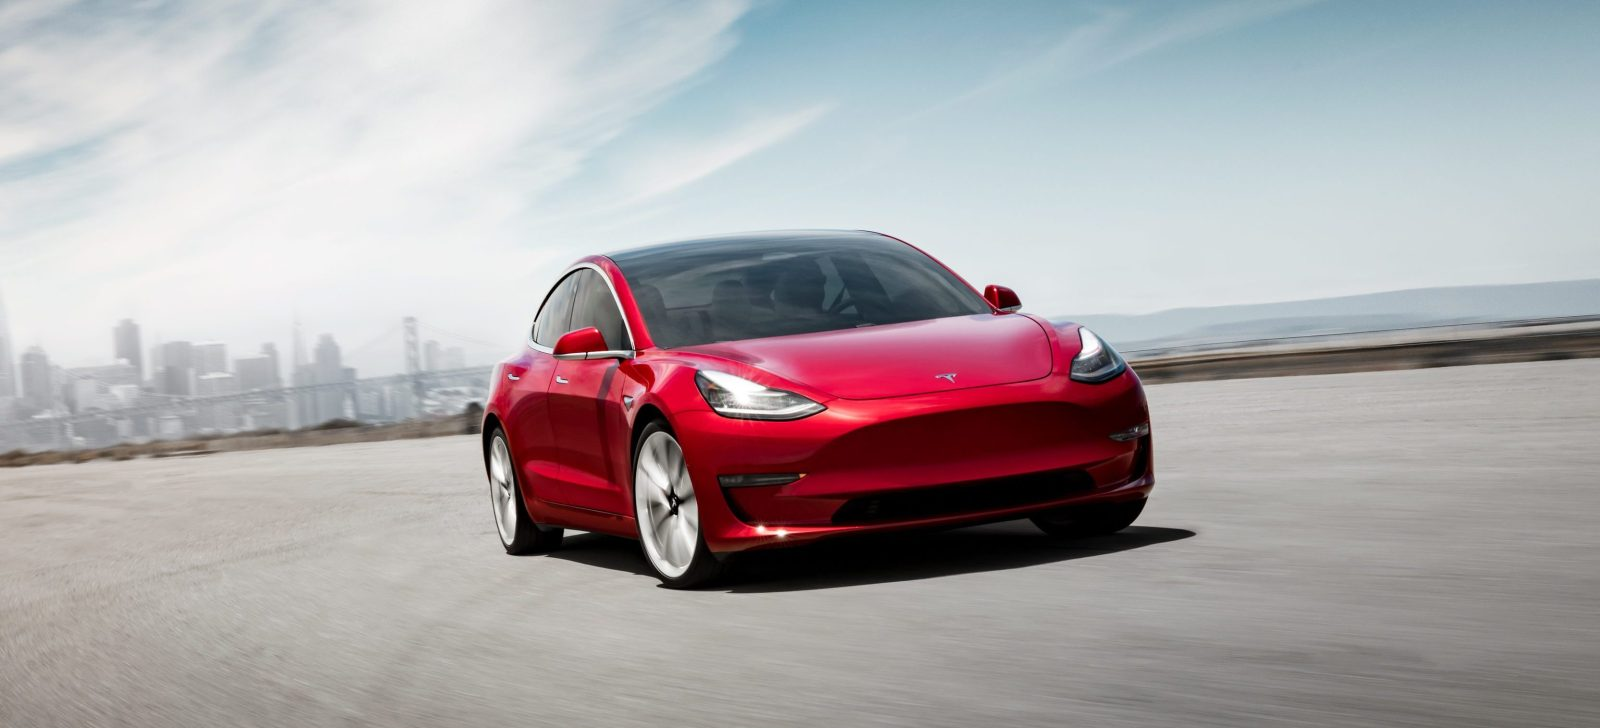 hight resolution of tesla opens model 3 orders to the public in europe and china